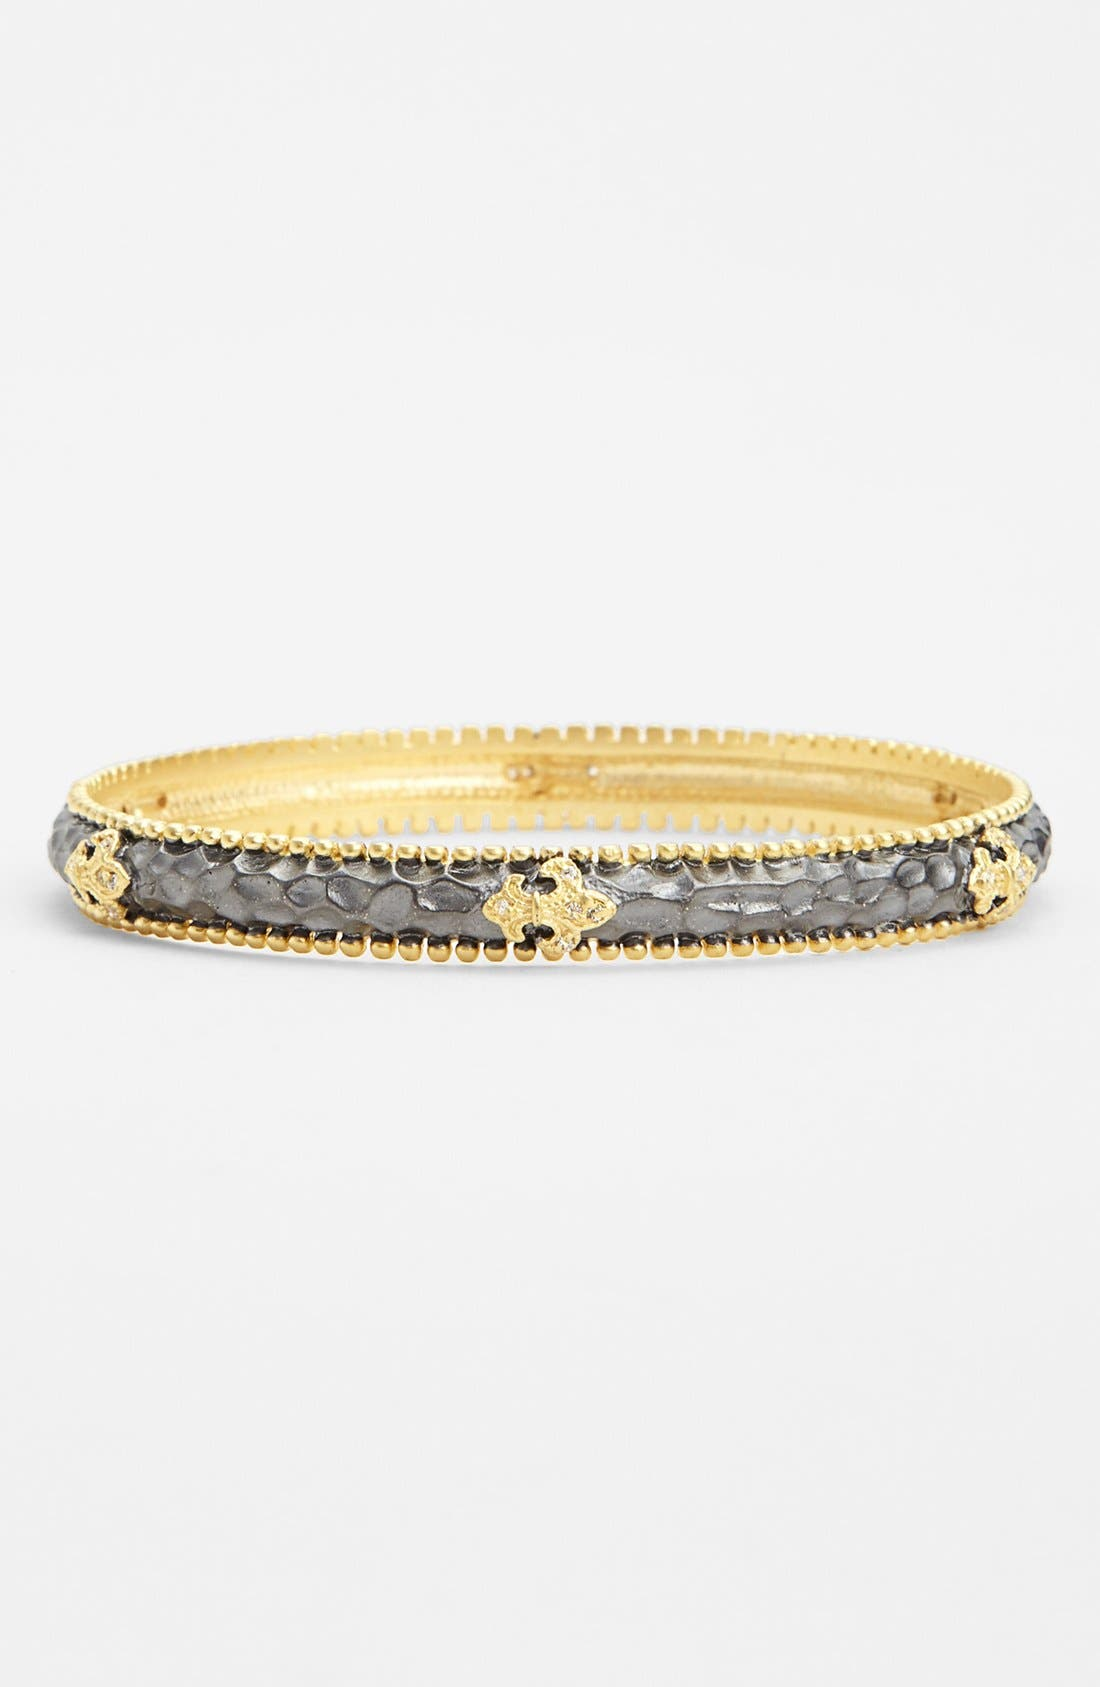 Main Image - FREIDA ROTHMAN 'Tribeca' Fleur de Lis Station Hammered Bangle